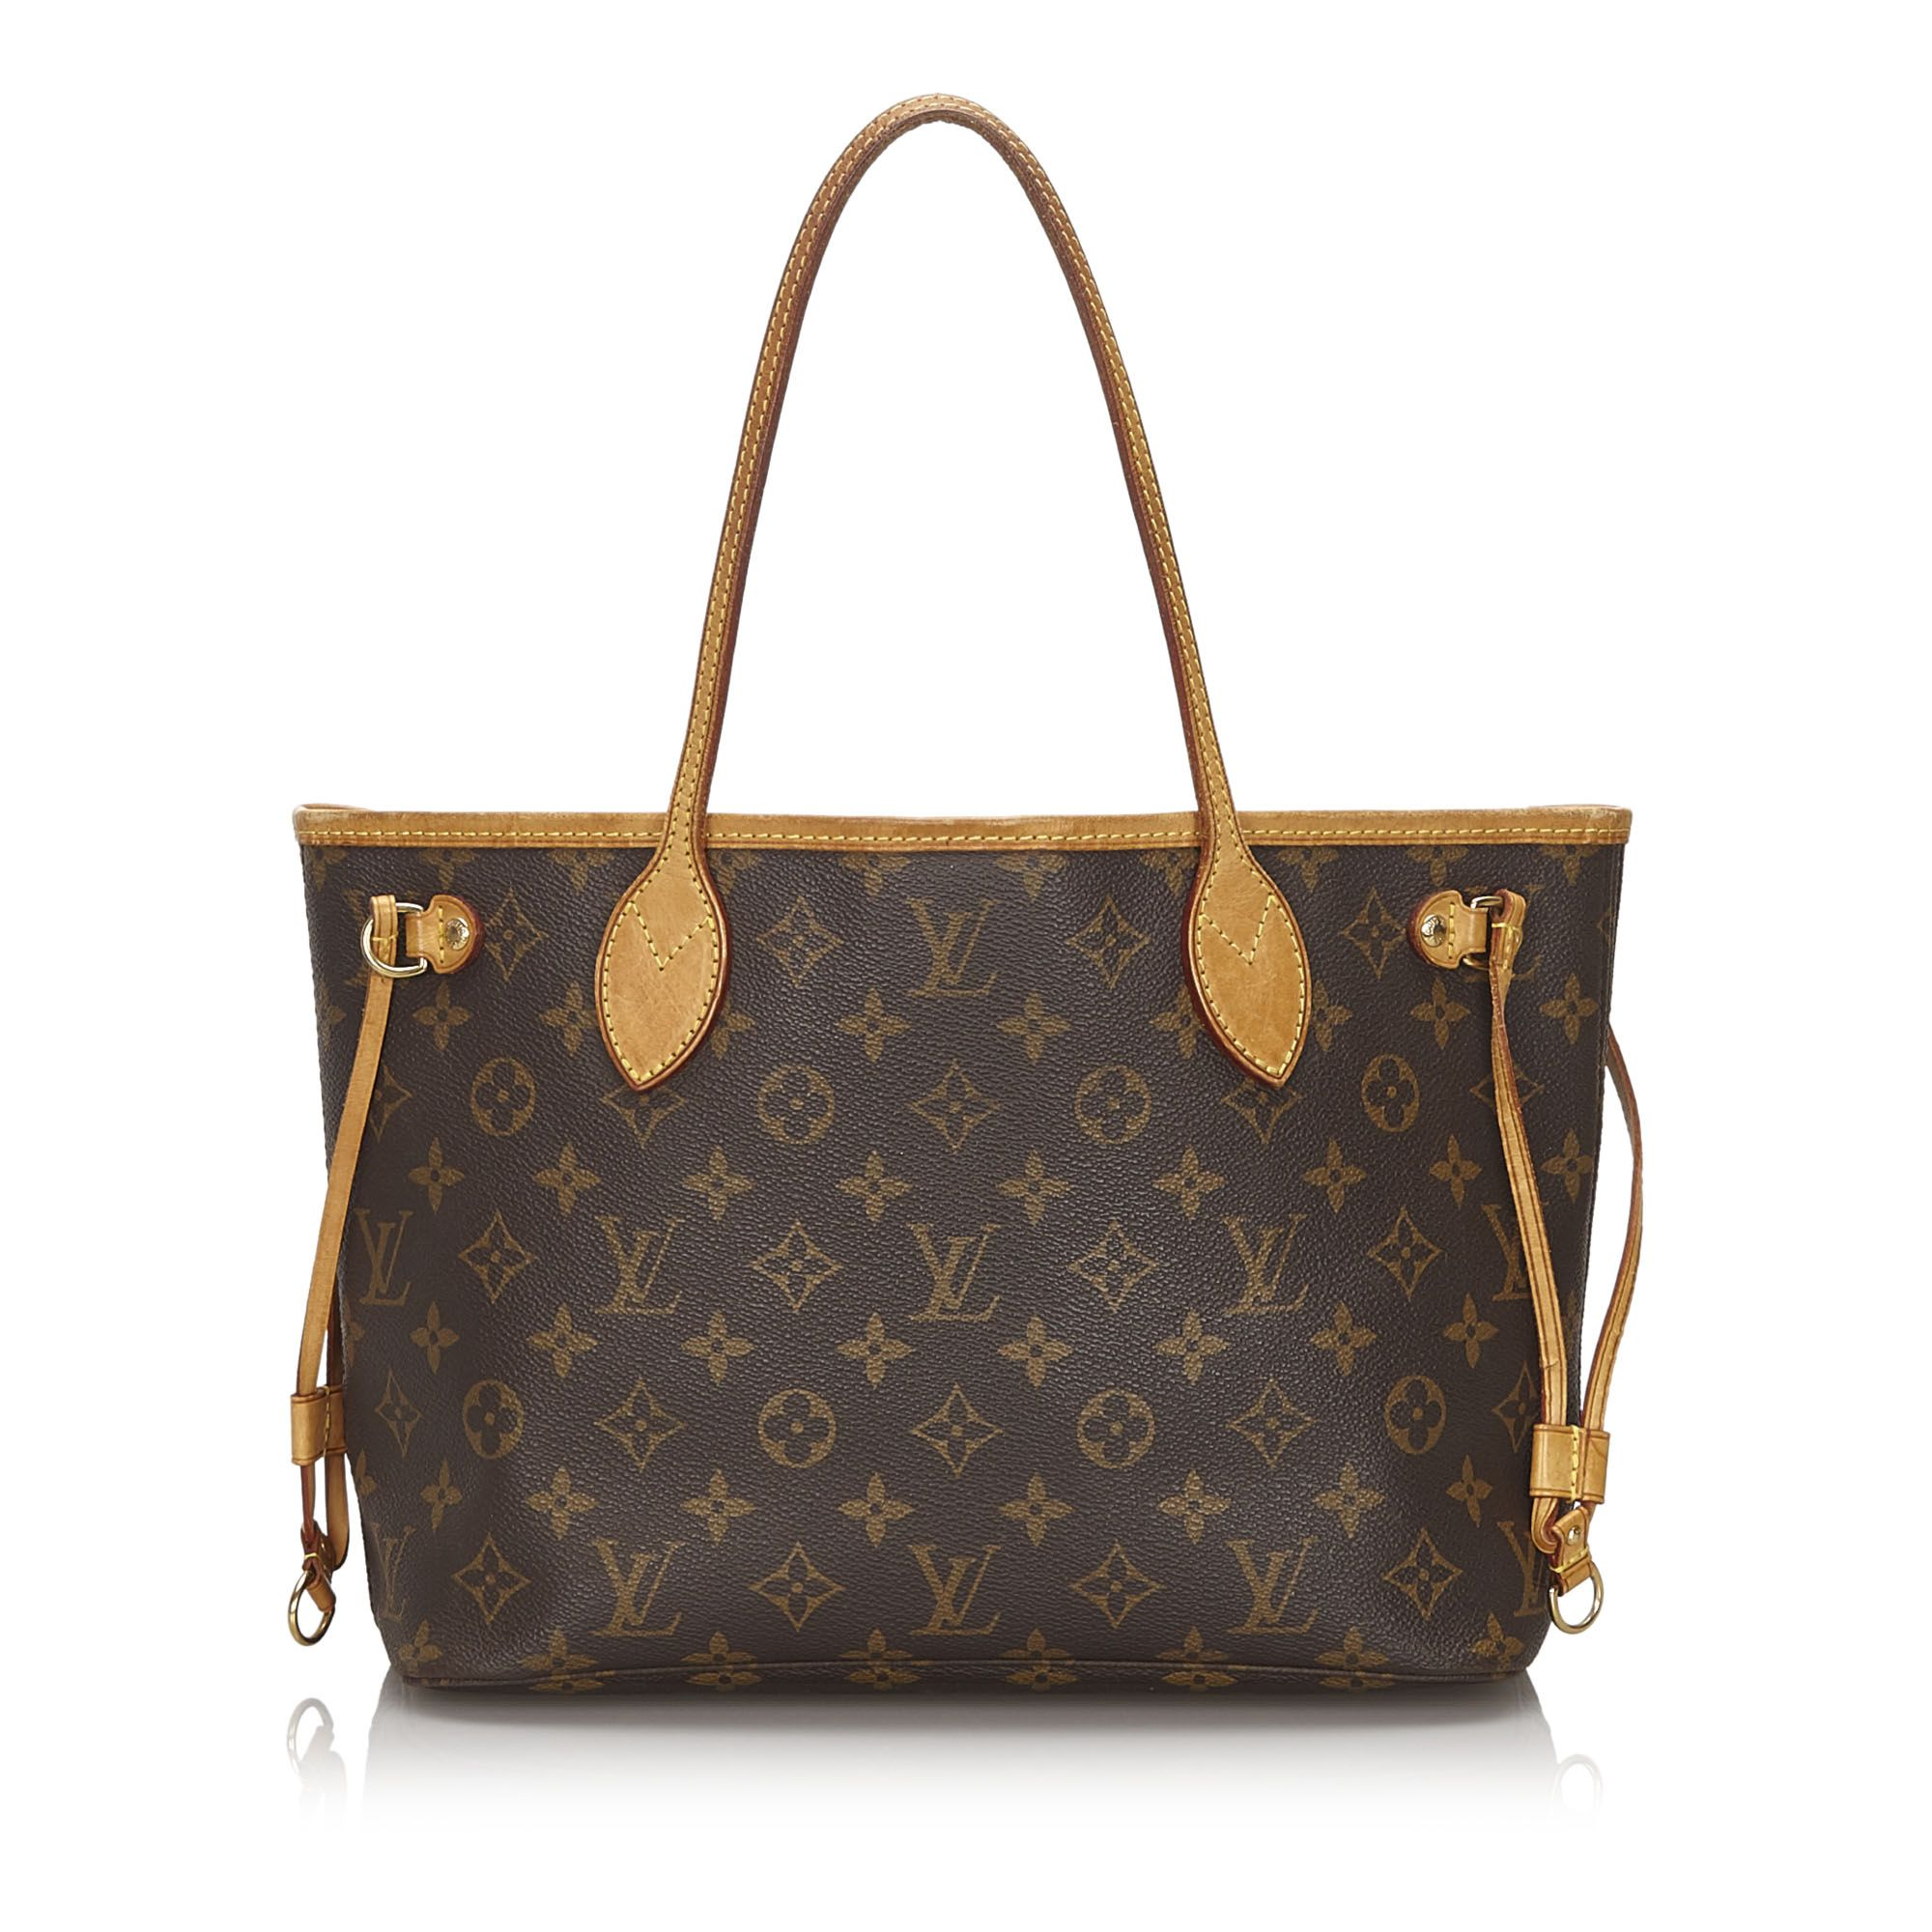 Vintage Louis Vuitton Monogram Neverfull PM Brown